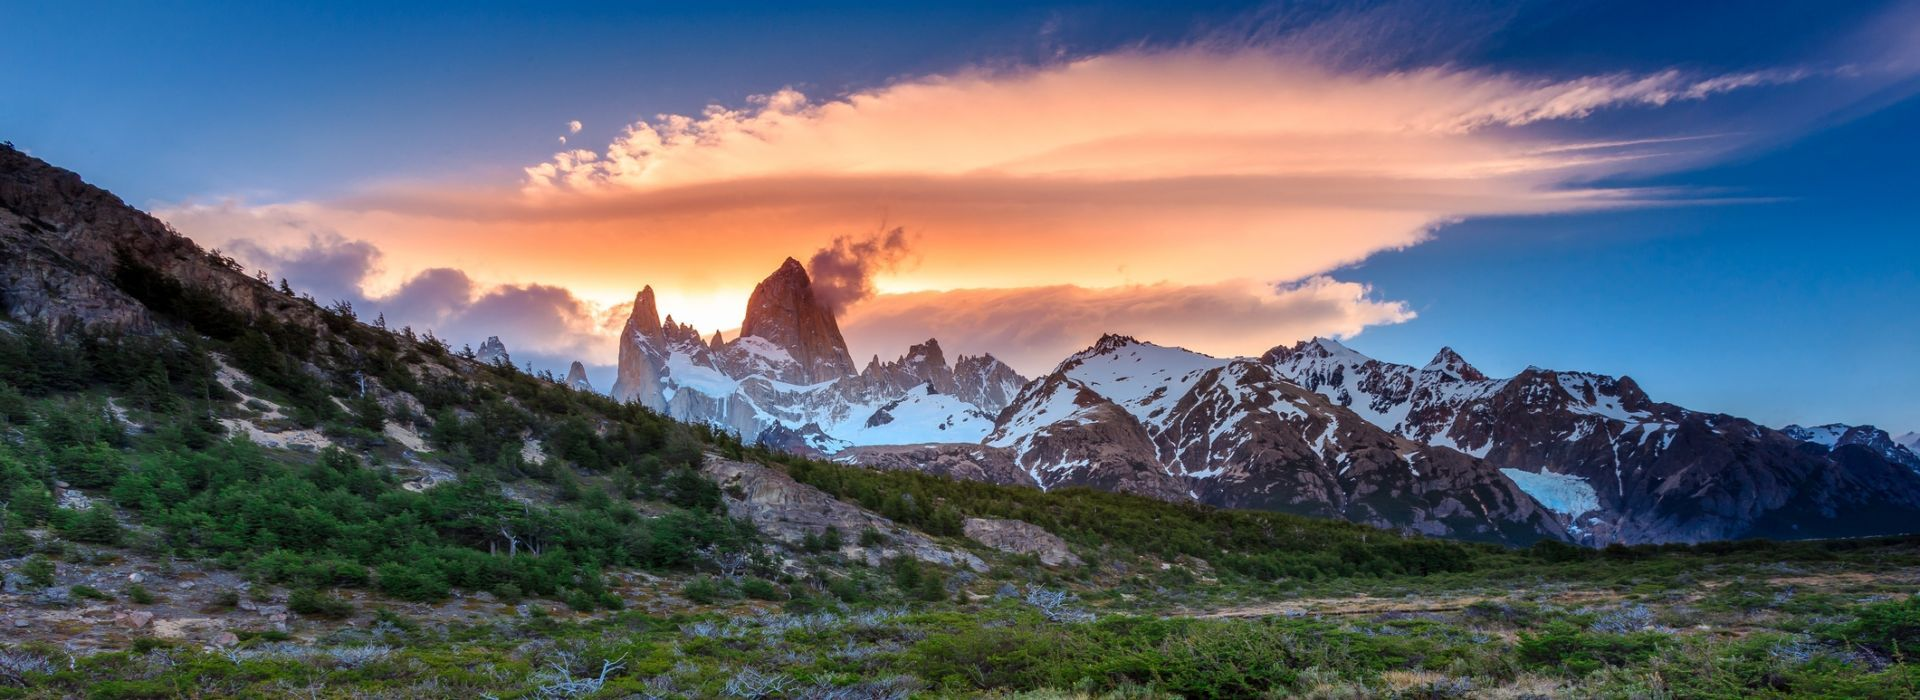 National parks Tours in Patagonia